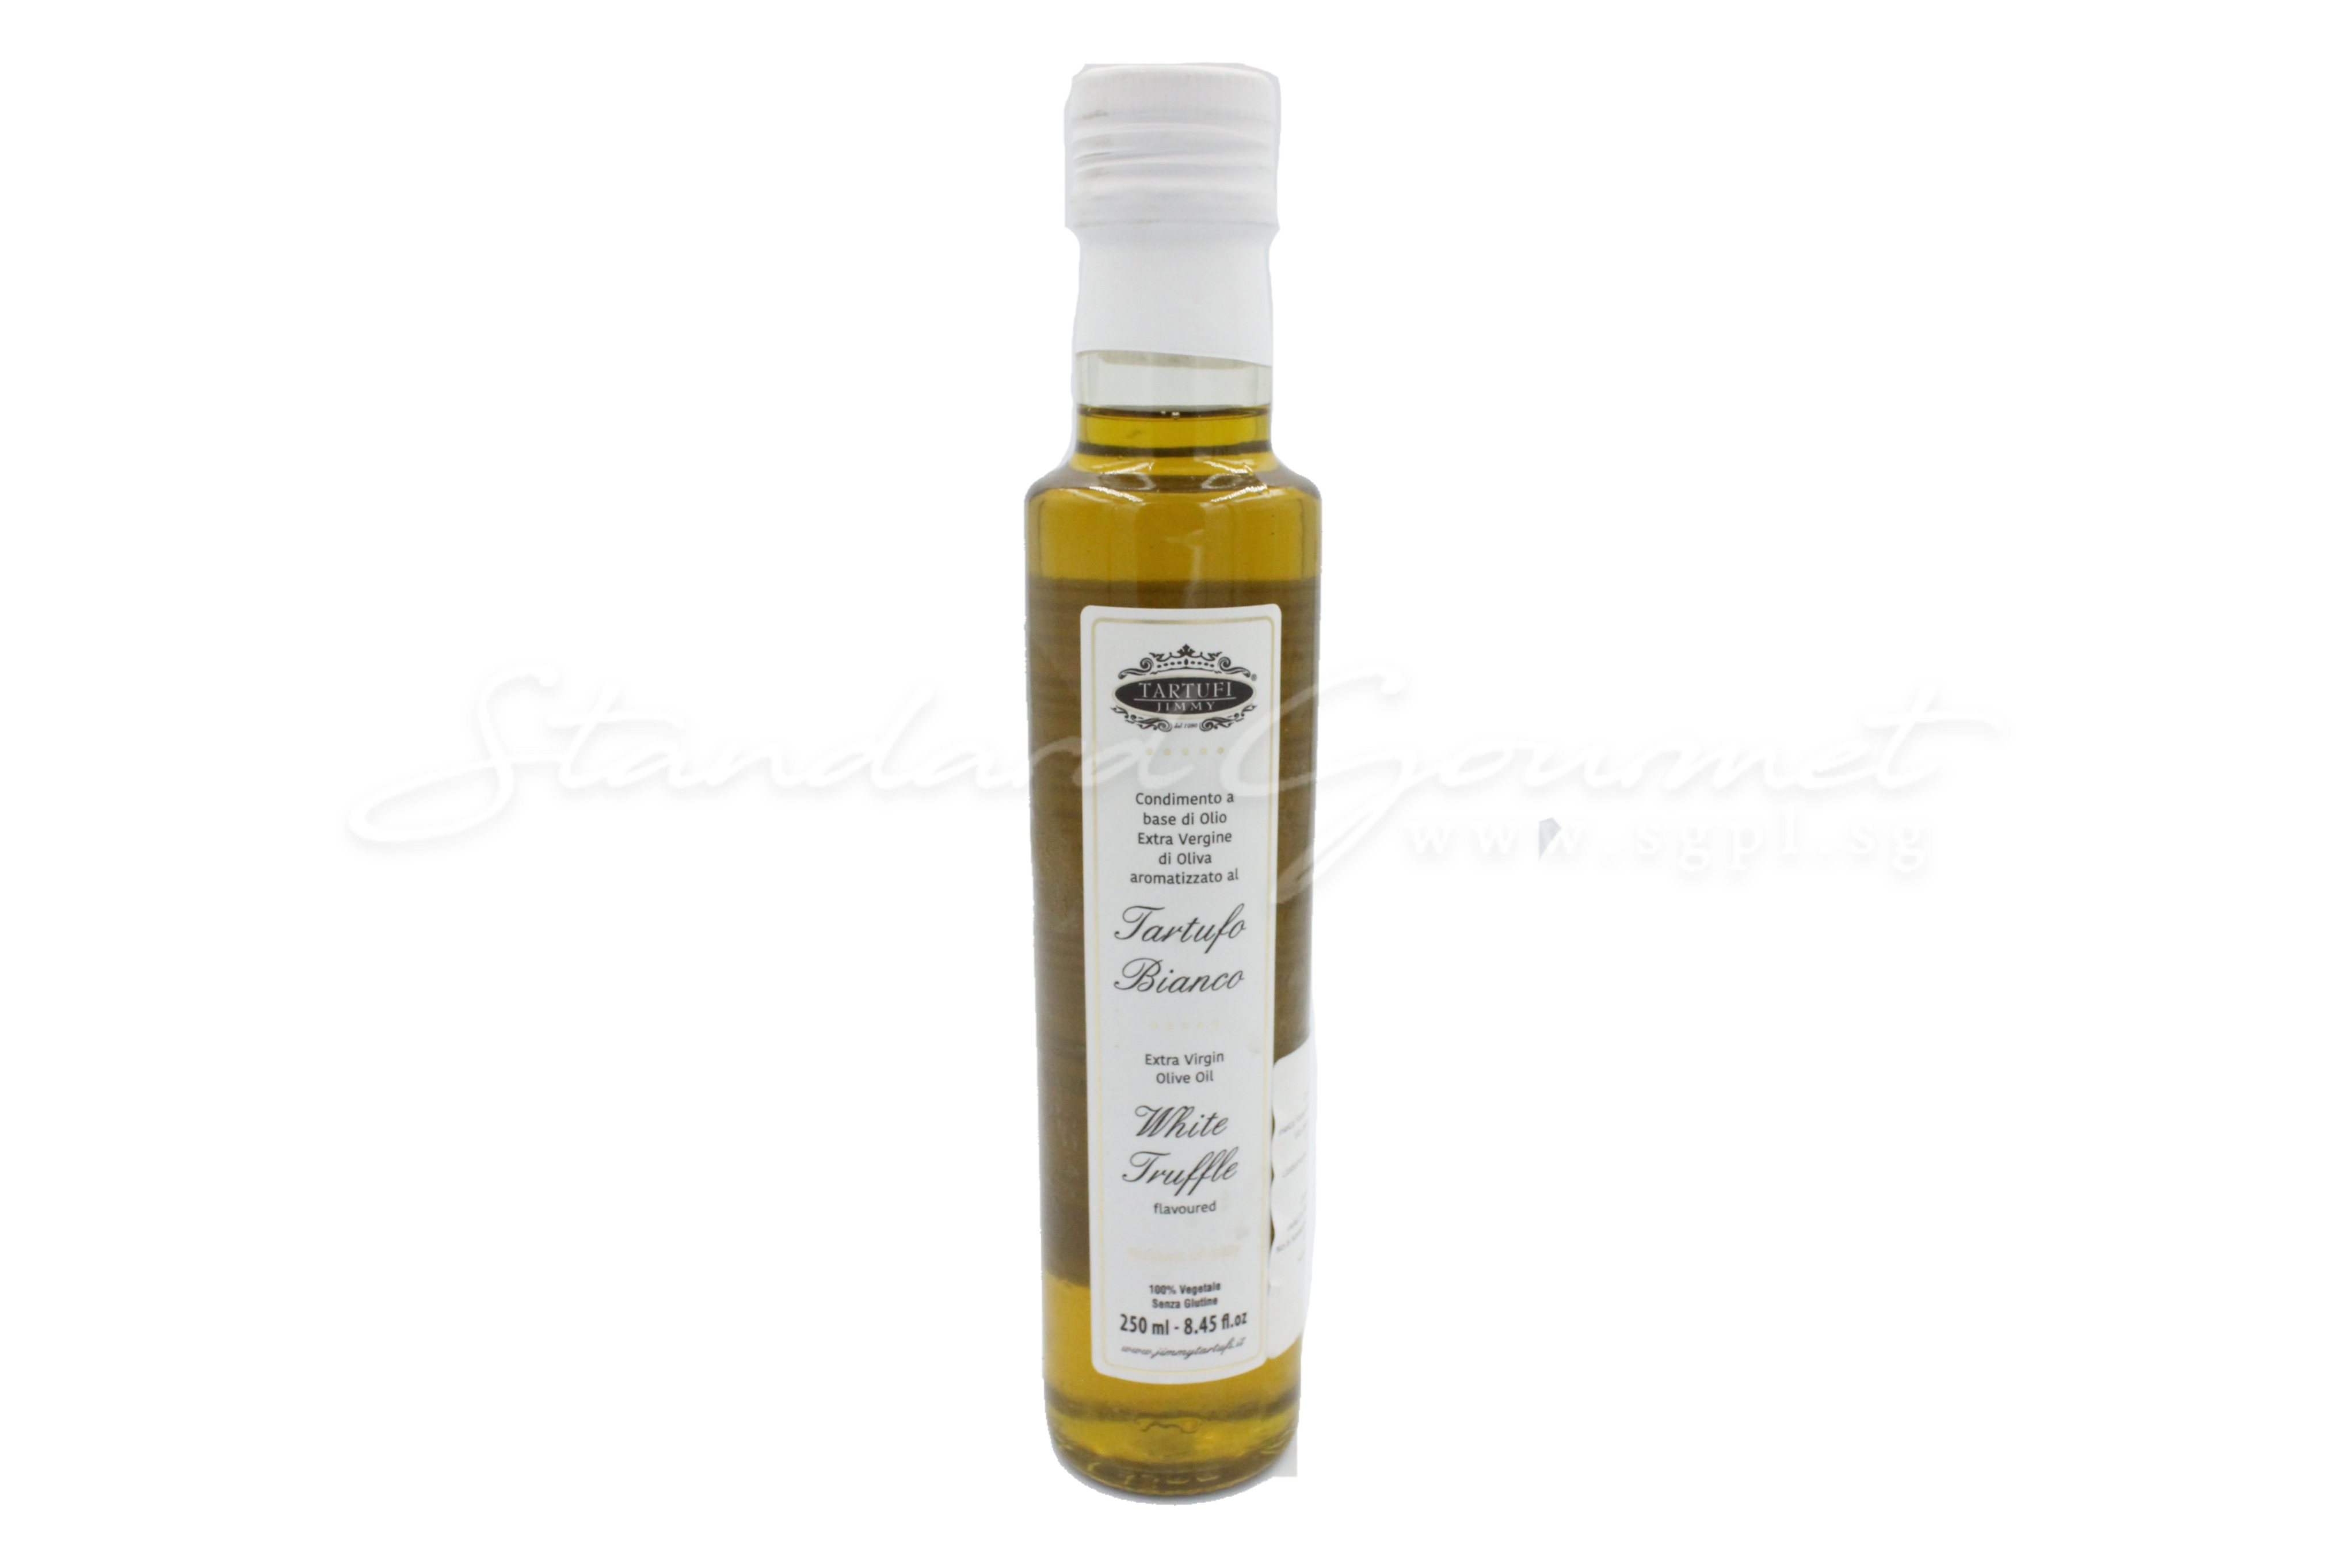 Jimmy White Truffle Evoo 250ml